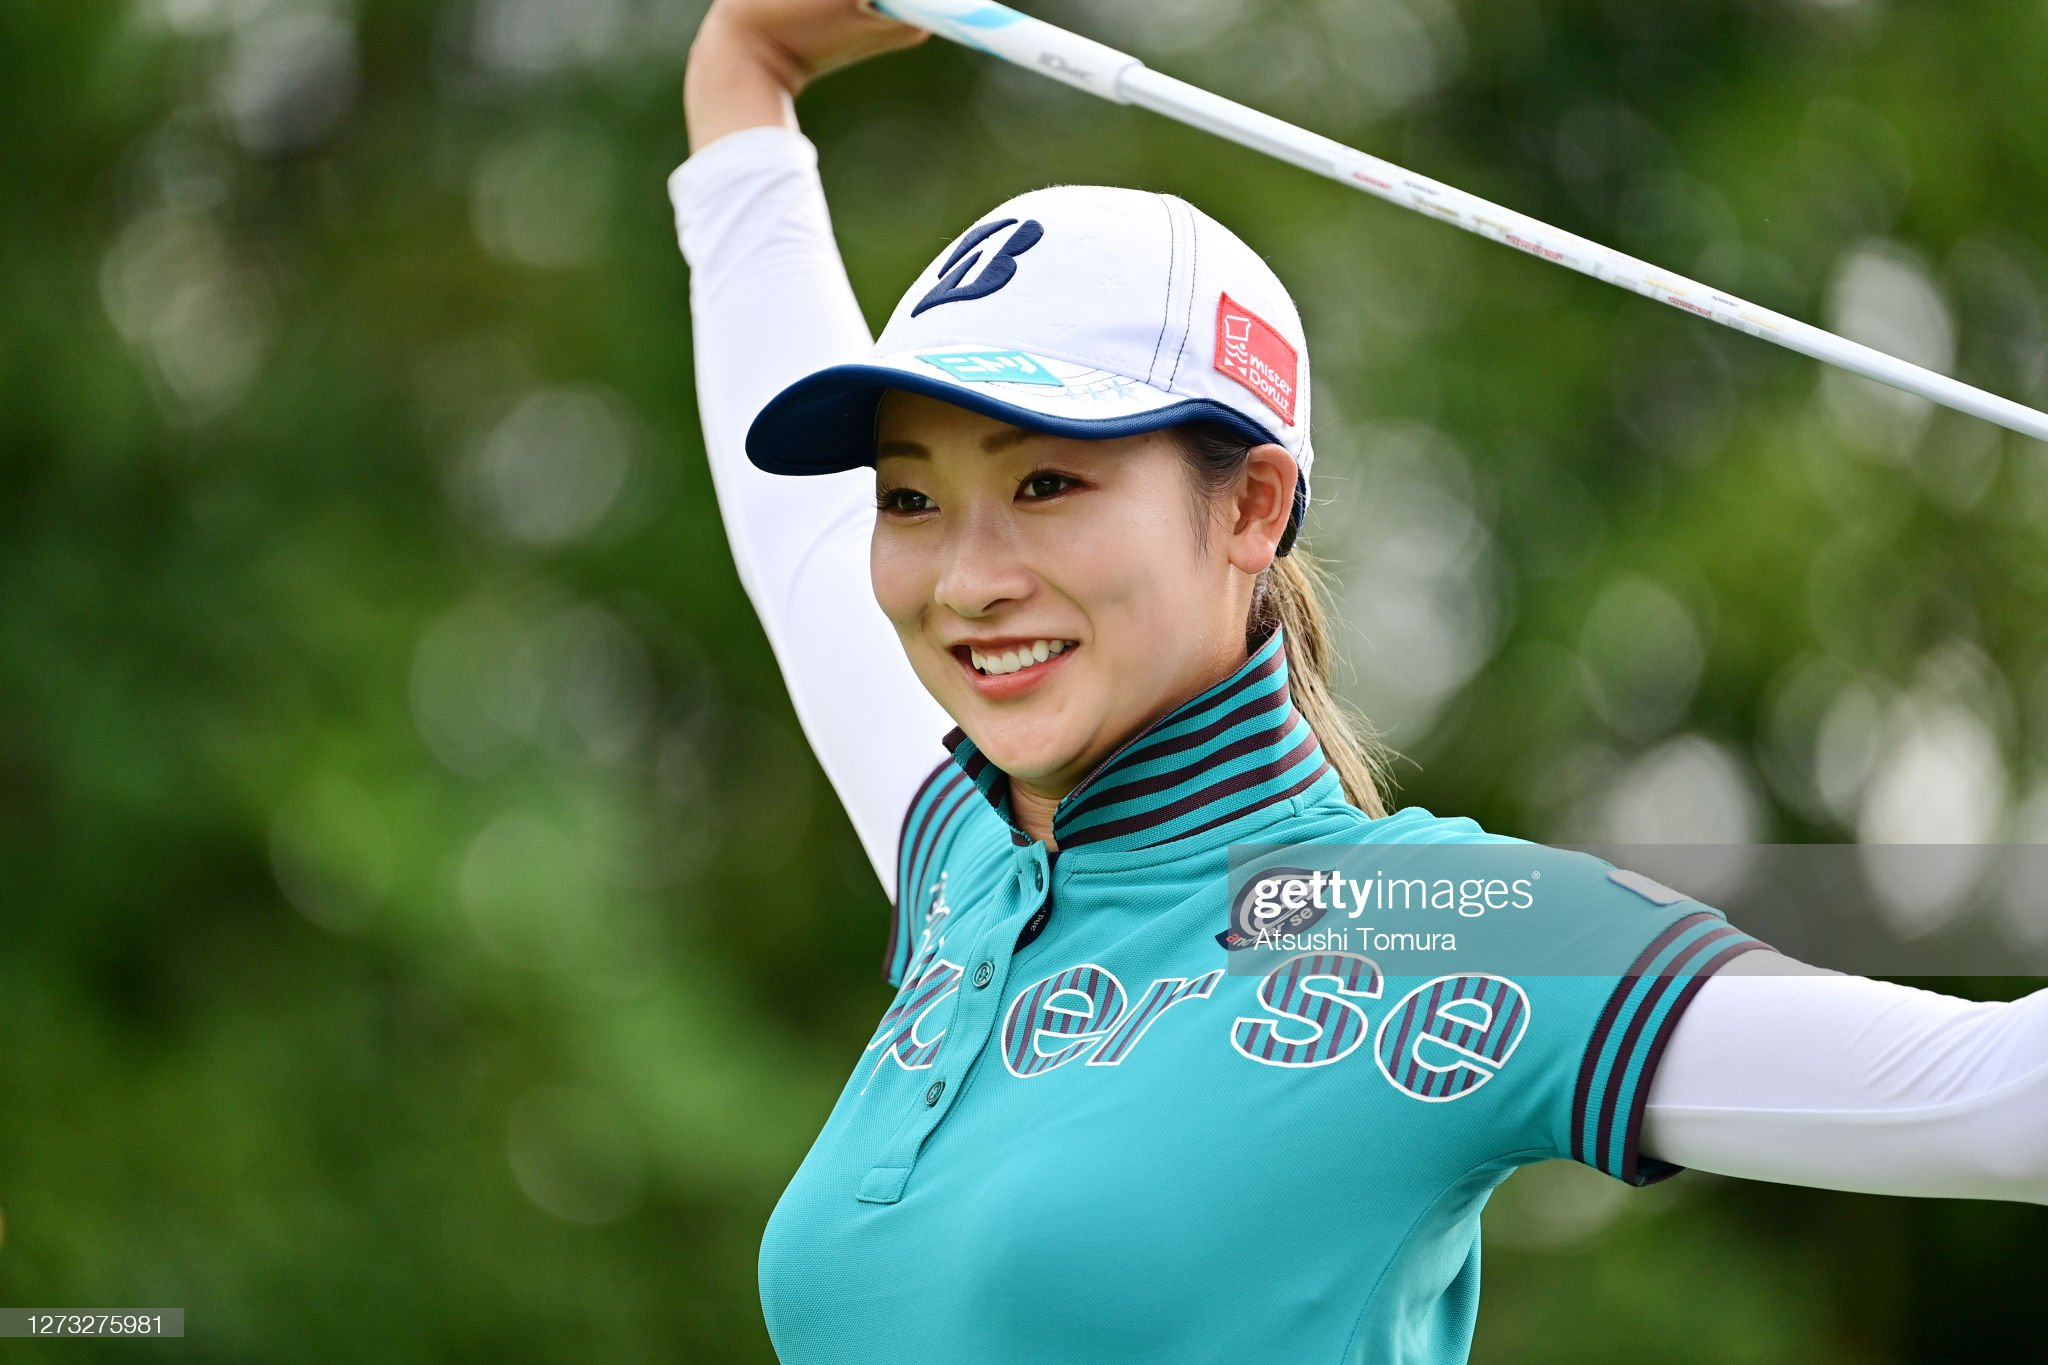 https://media.gettyimages.com/photos/rei-matsuda-of-japan-smiles-during-the-first-round-of-the-descente-picture-id1273275981?s=2048x2048